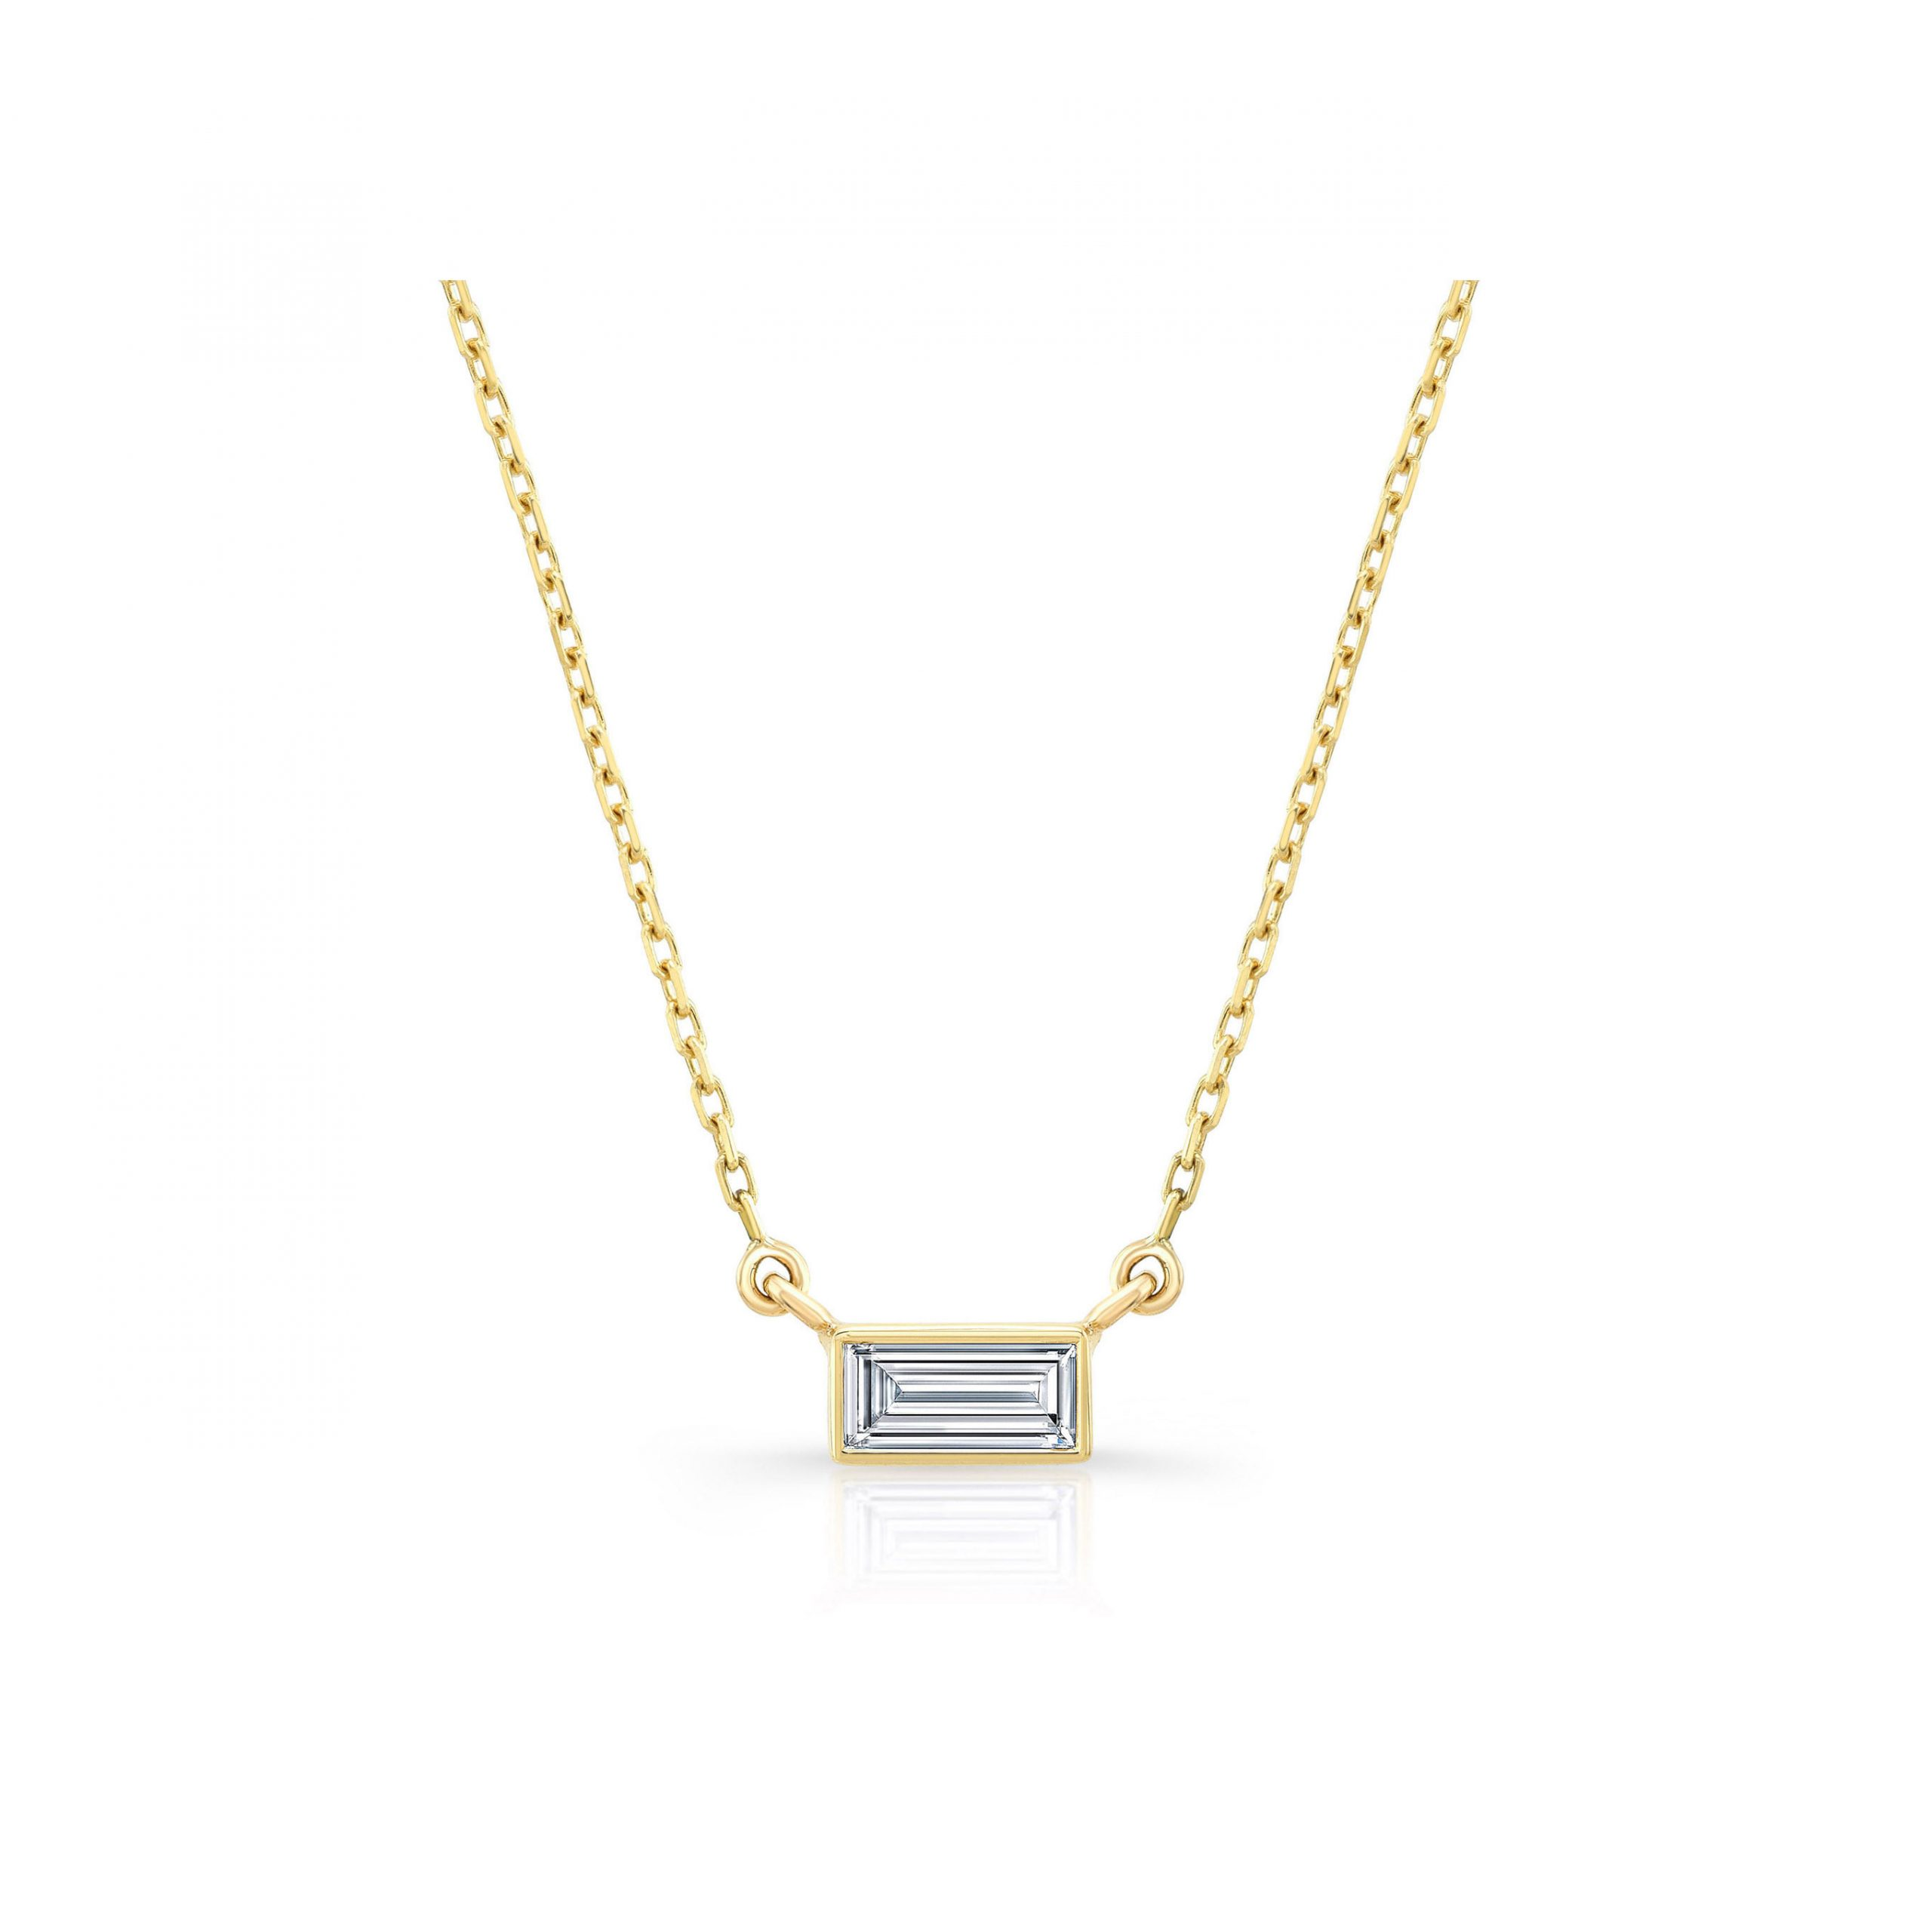 La Petite Baguette Bezel Diamond Necklace in 18k Yellow Gold Front View by Oui by Jean Dousset